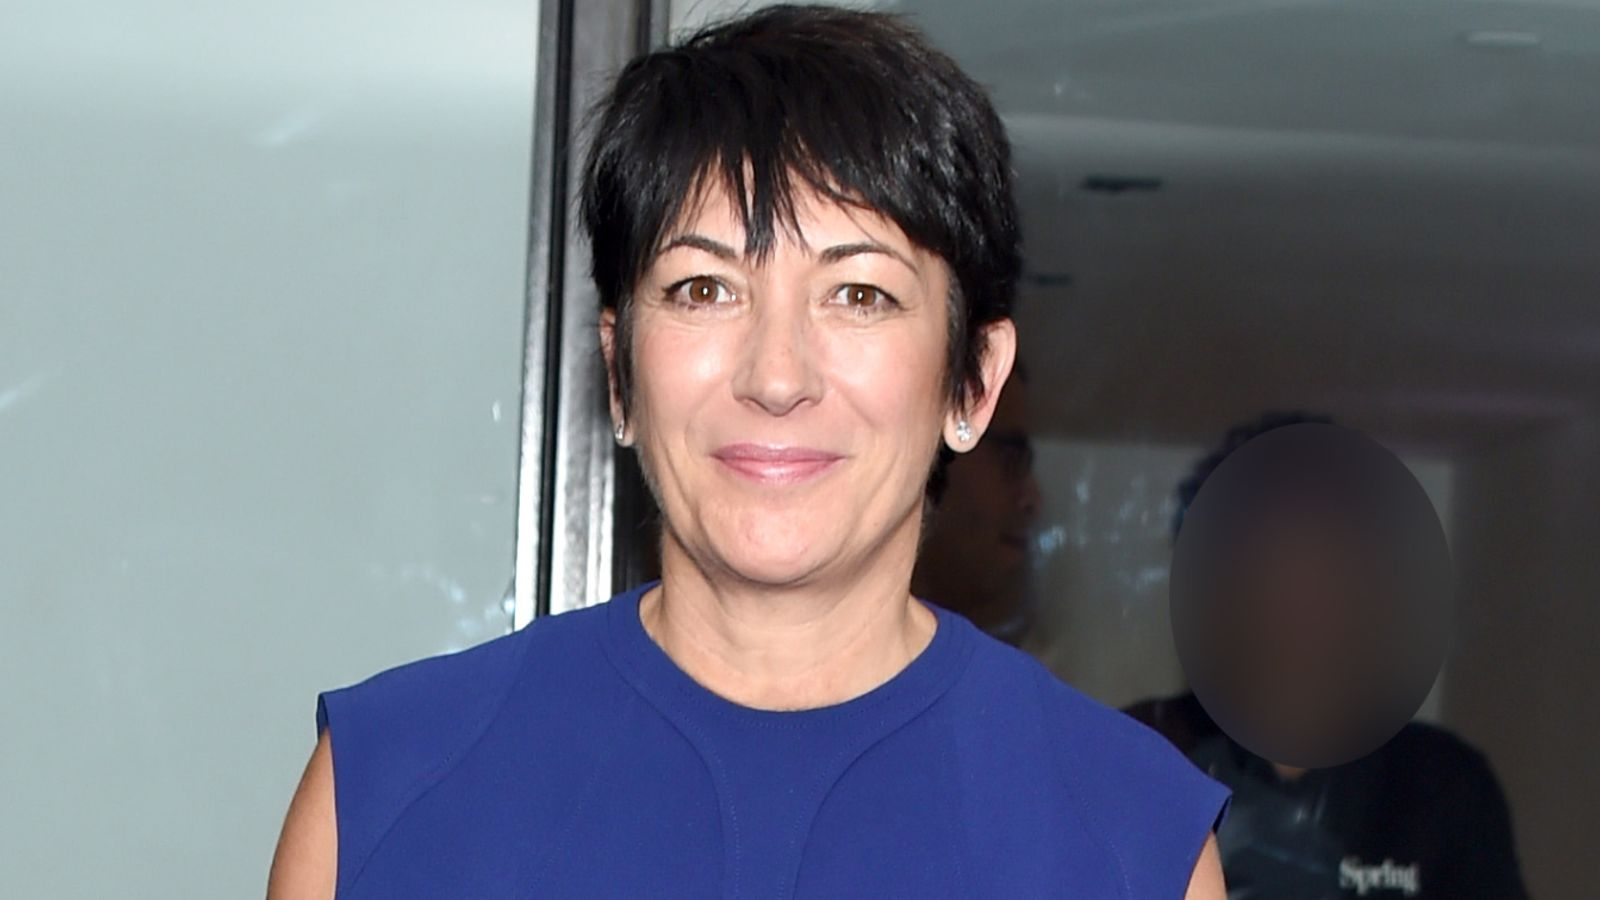 Ghislaine Maxwell Arrested And Charged Over Sexual